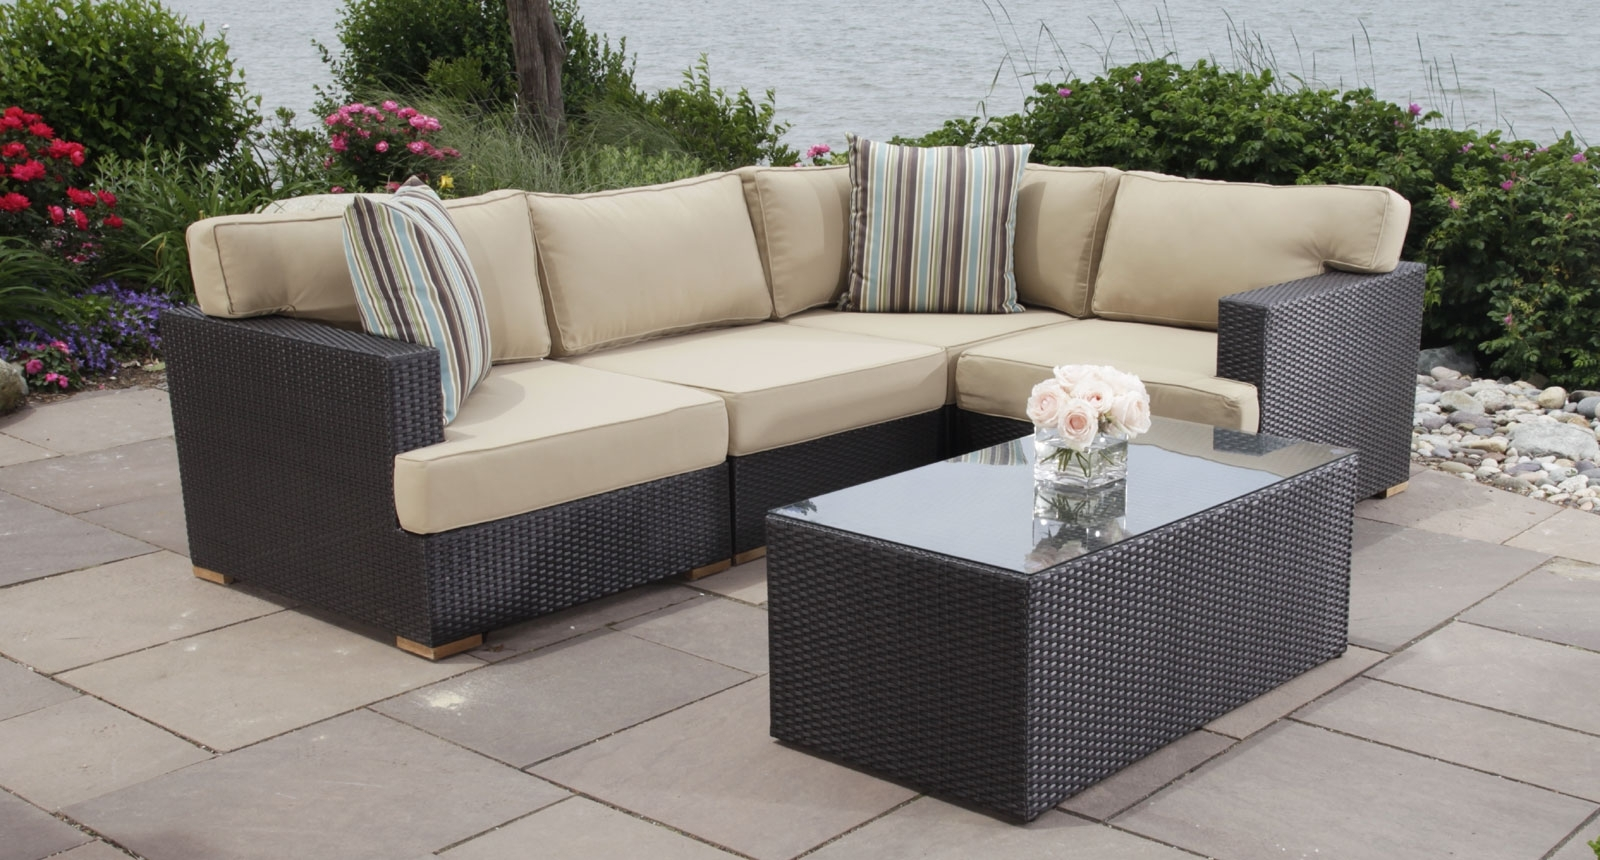 Patio Sofas Inside 2019 Outdoor Sectional Cover Amazon Waterproof Patio Furniture Covers (View 9 of 20)